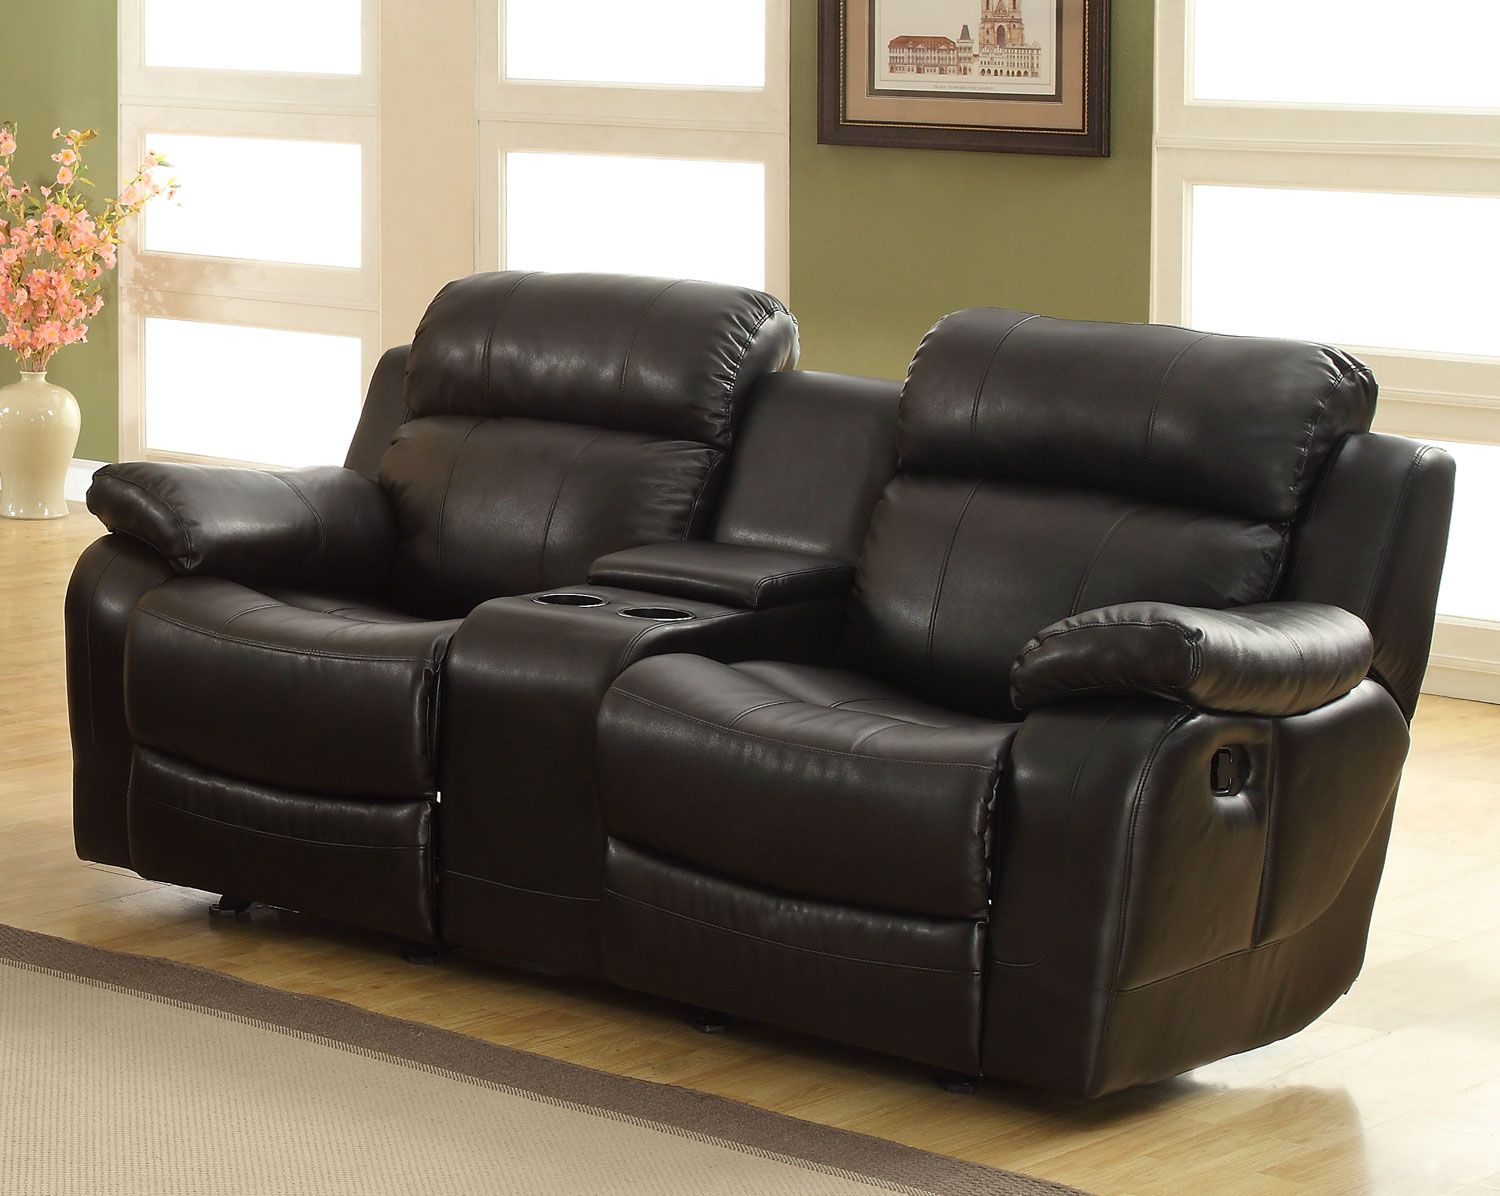 Homelegance Marille Love Seat Glider Recliner With Center Console